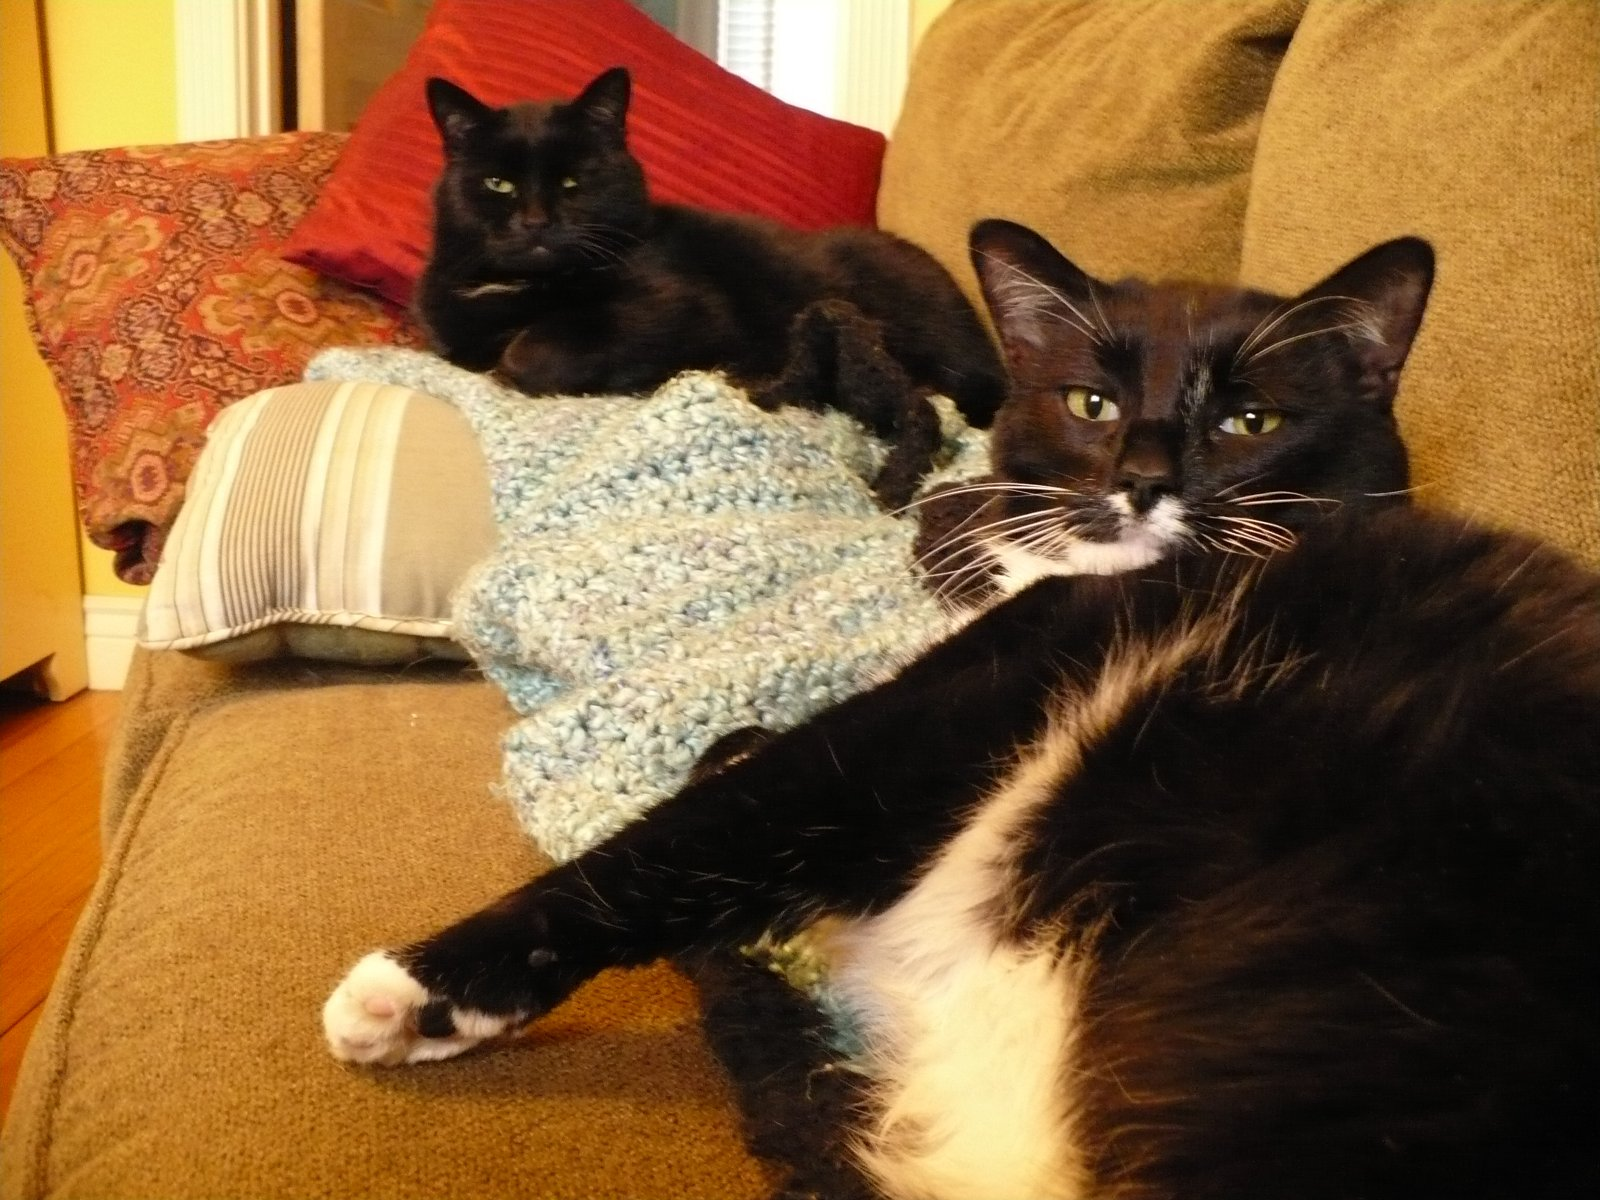 Our Gracie and Mr. Mittens relaxing.  February 2010